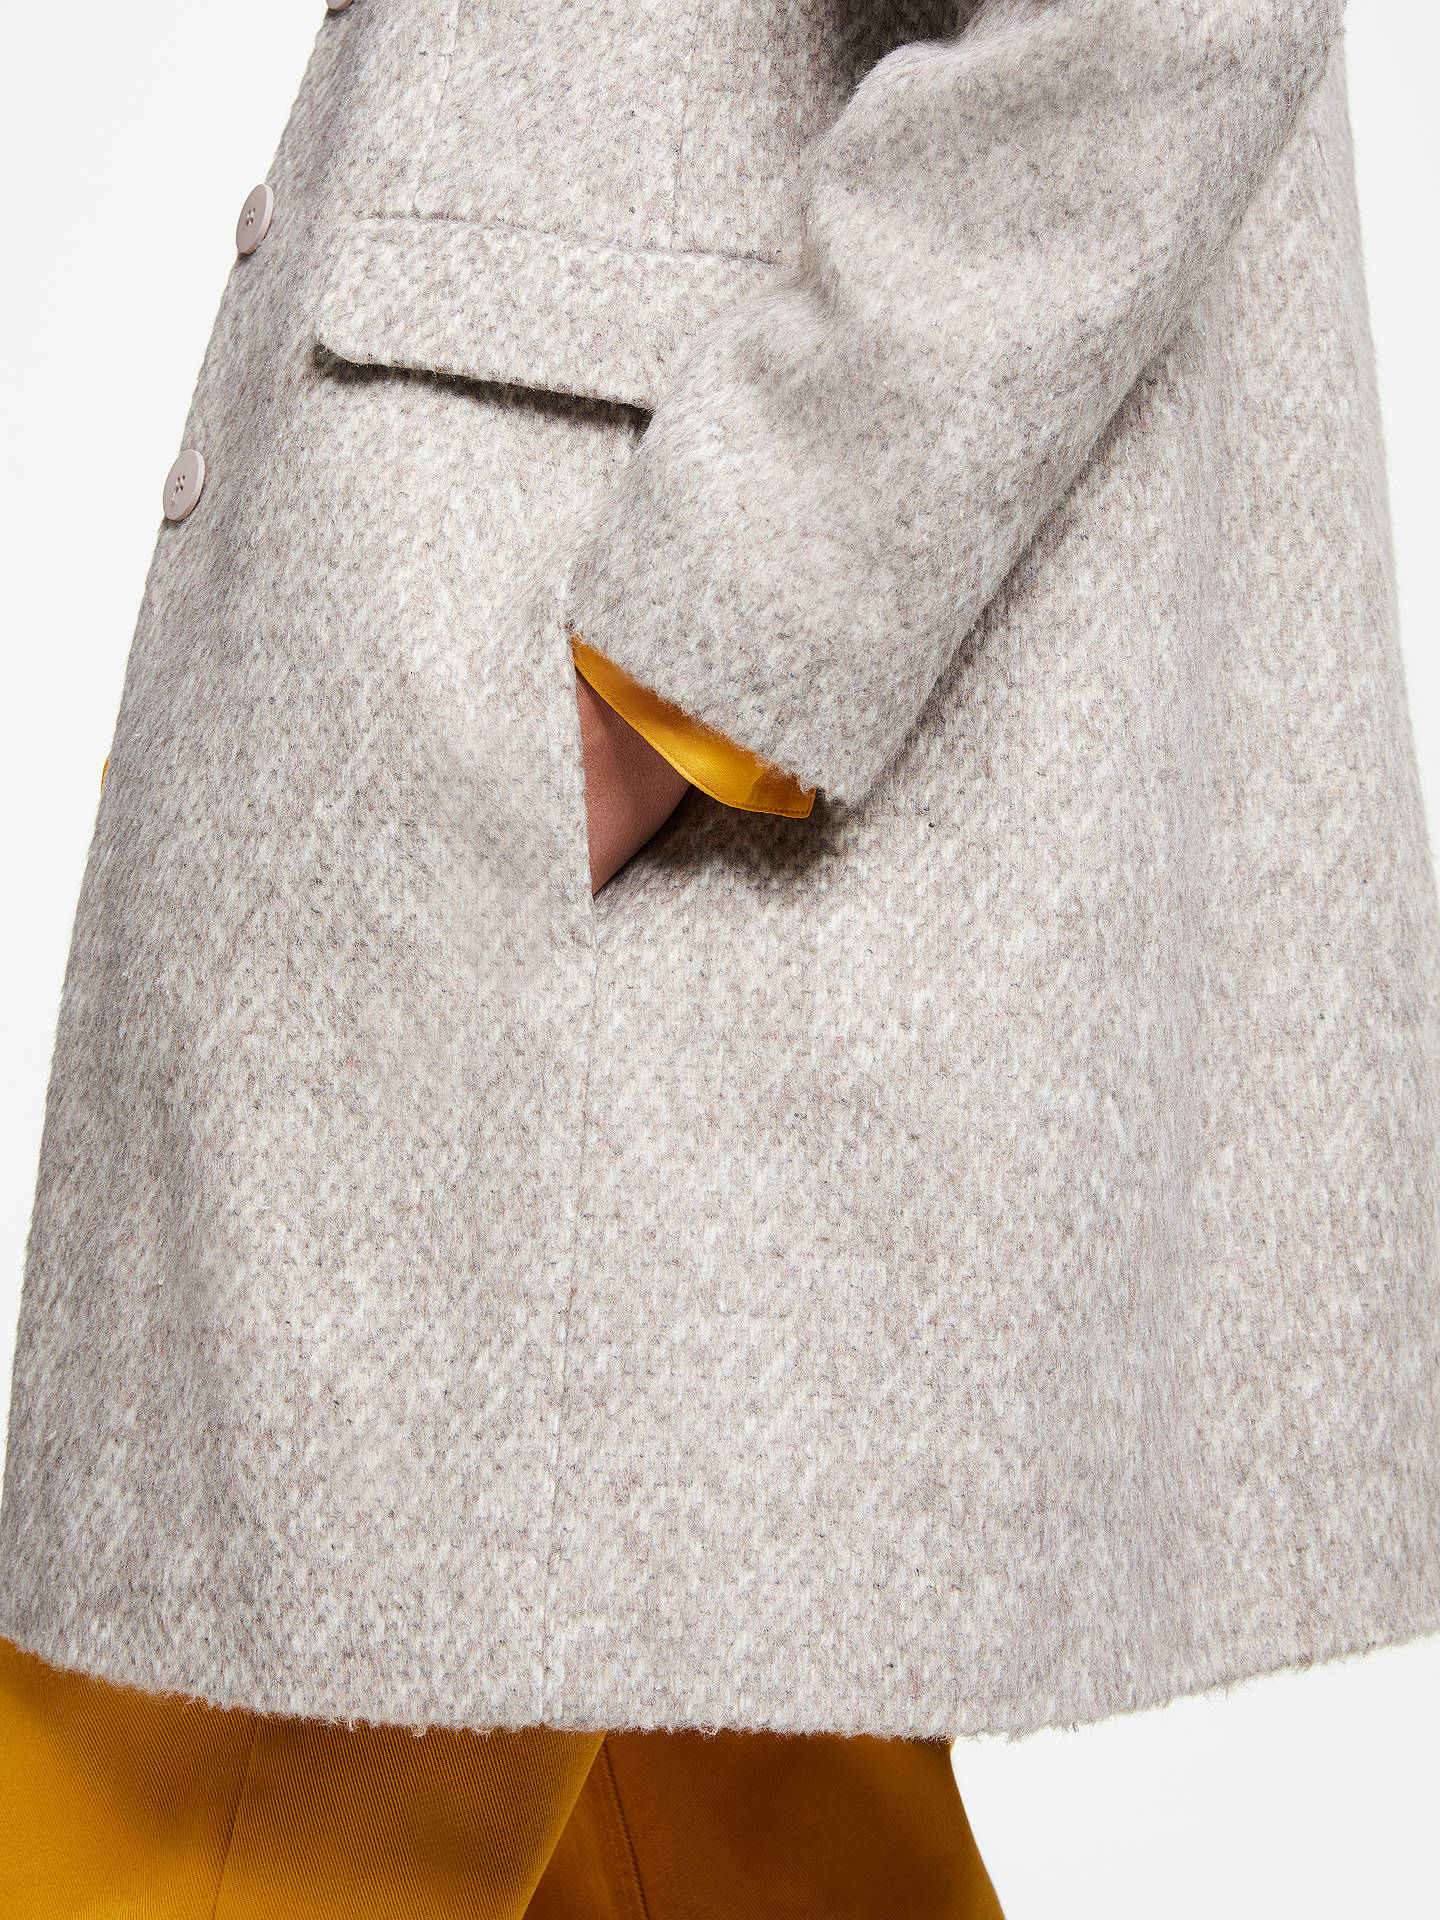 Buy John Lewis & Partners Funnel Coat, Camel, 8 Online at johnlewis.com